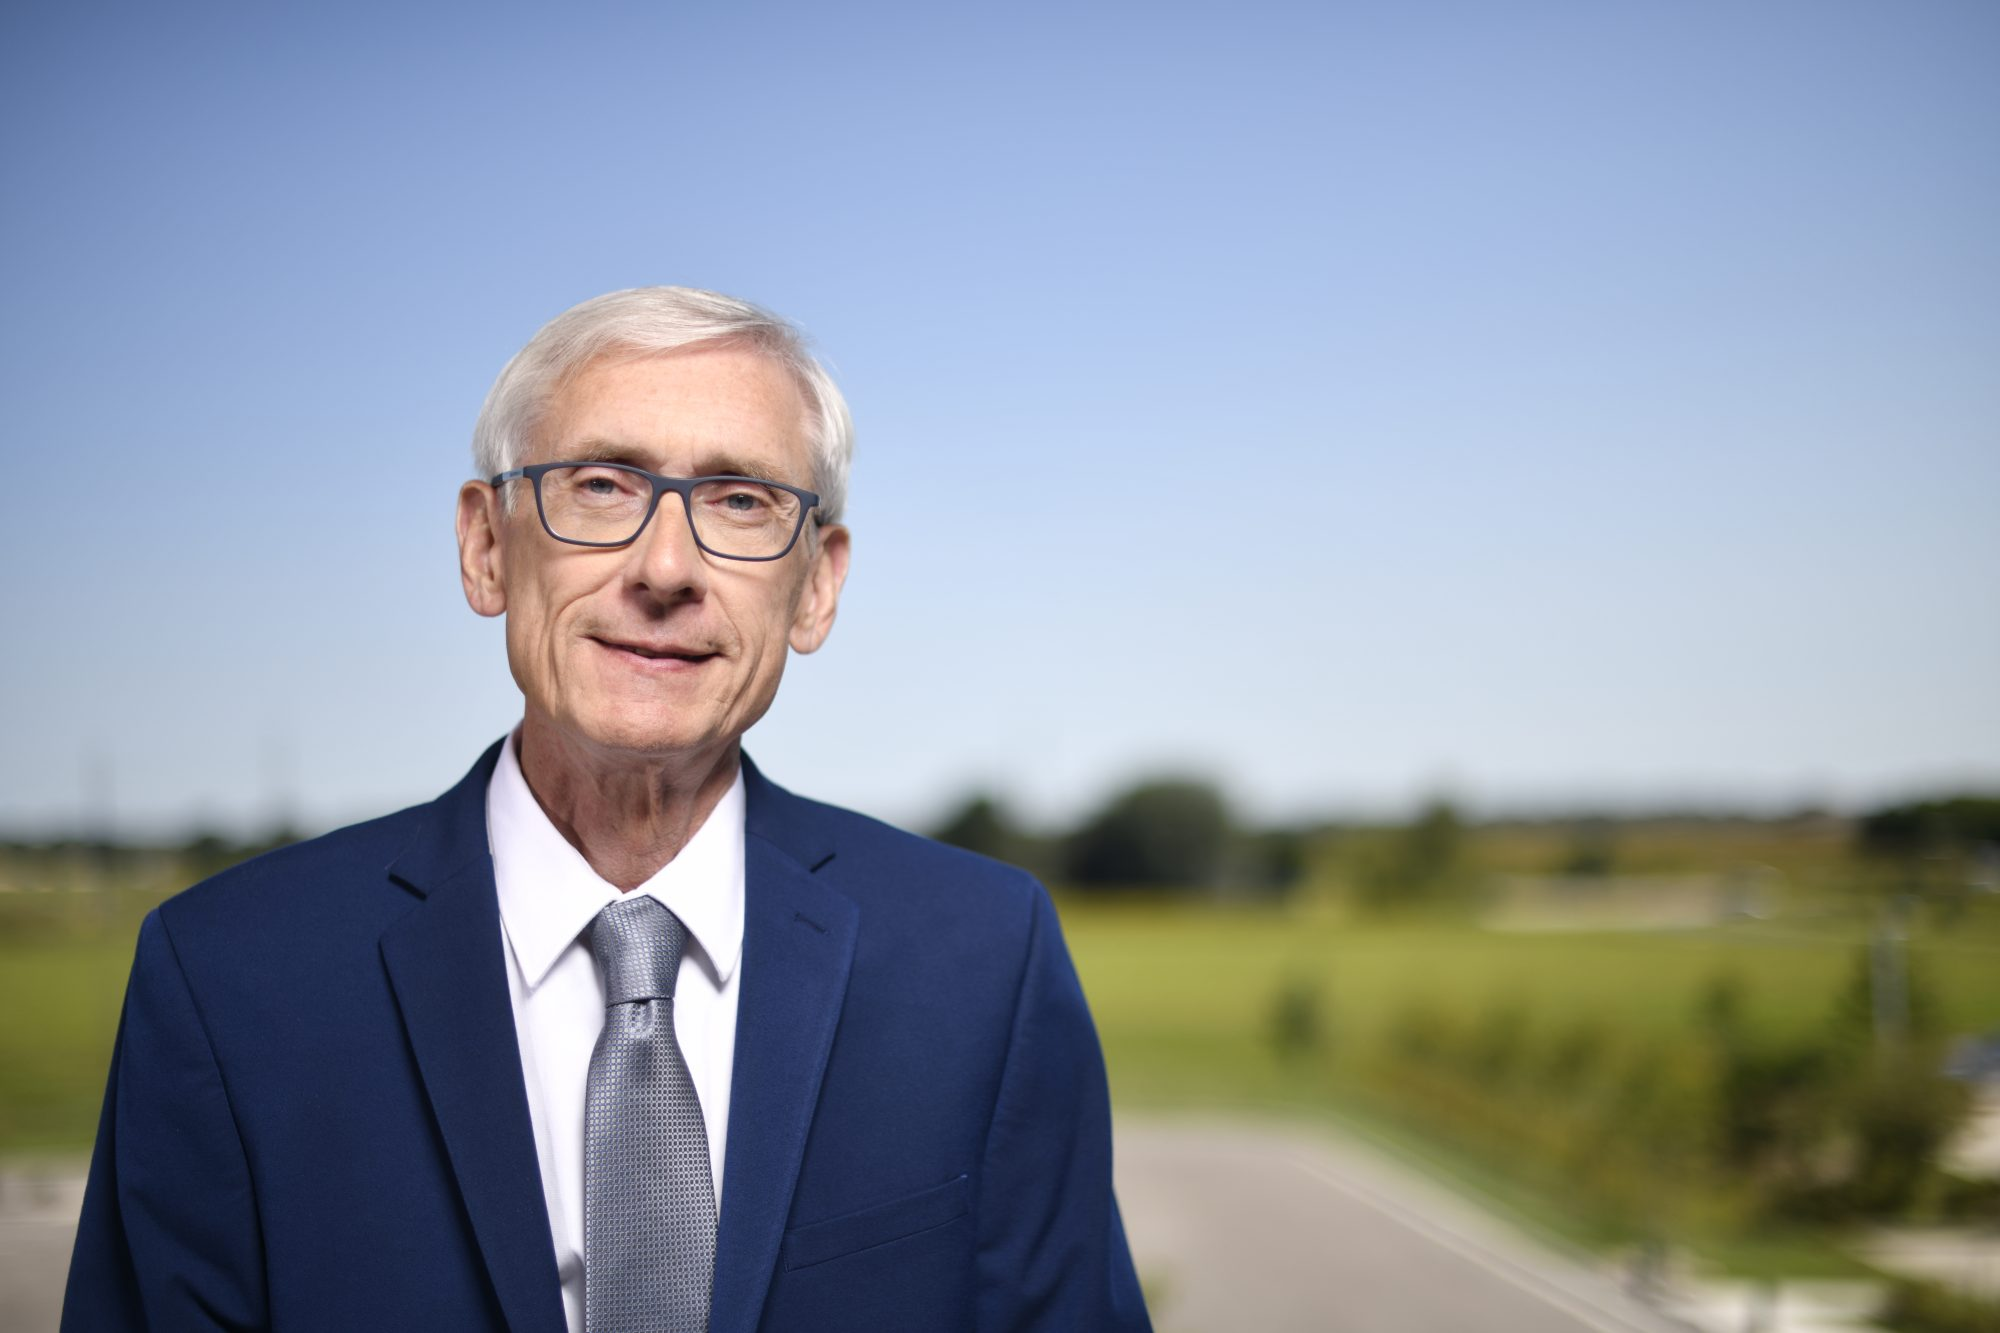 Gov. Evers Announces State to Take Legal Action Against PFAS Contaminators